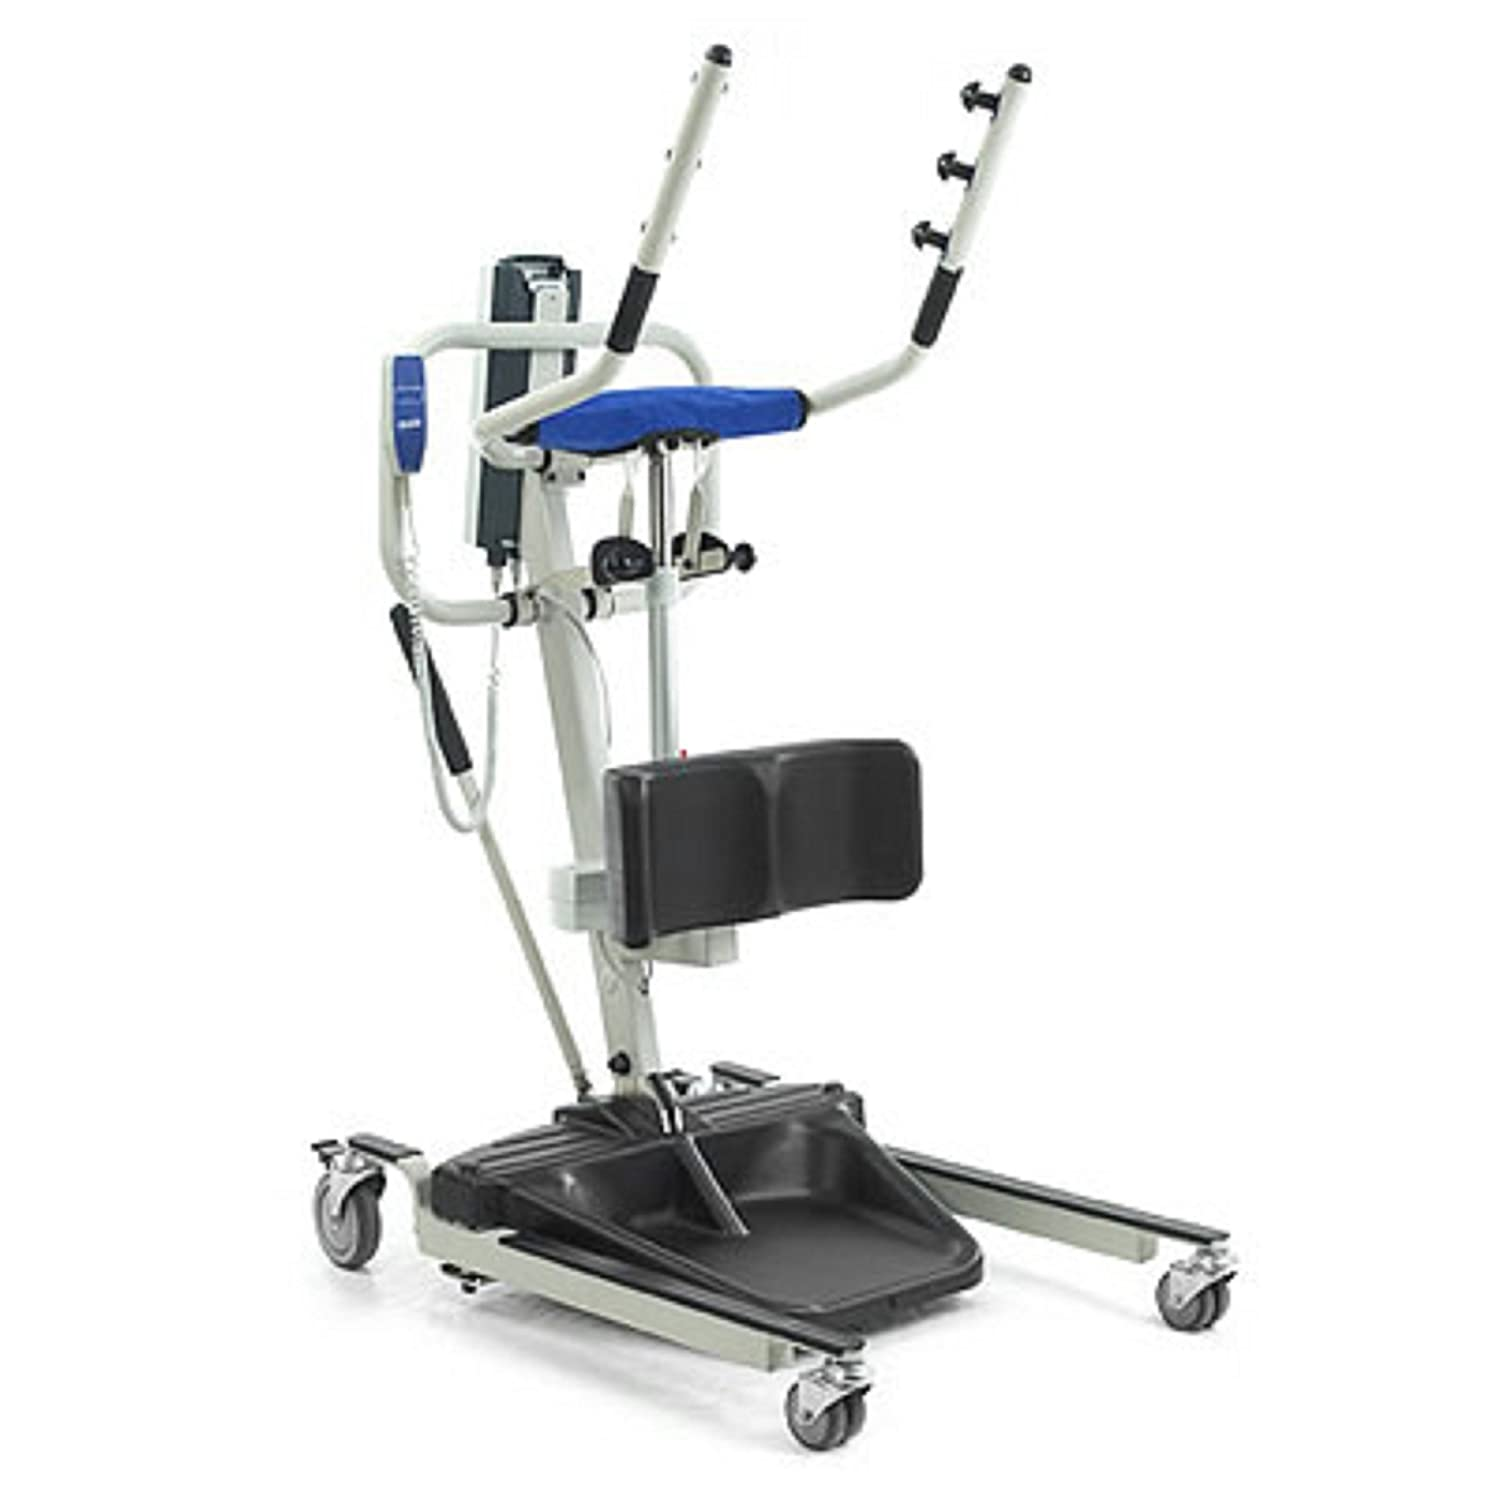 invacare reliant 350 stand up power scooter lifts